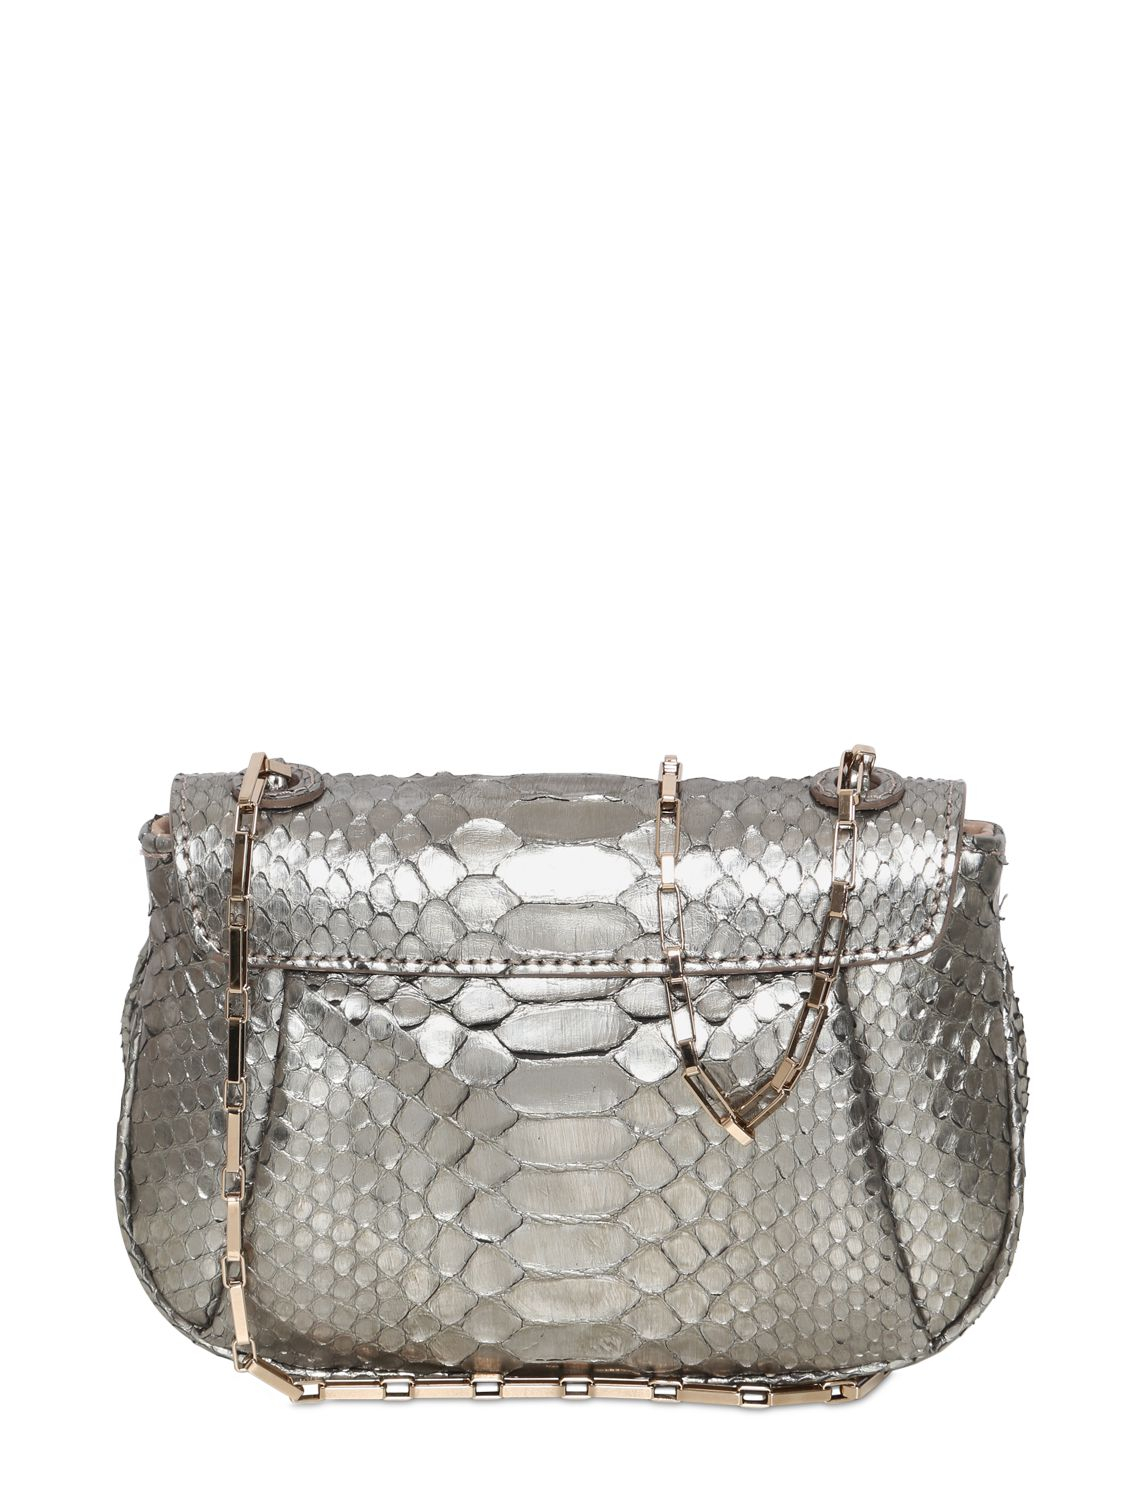 Zagliani Zoom Zoom Metallic Python Clutch in Metallic - Lyst